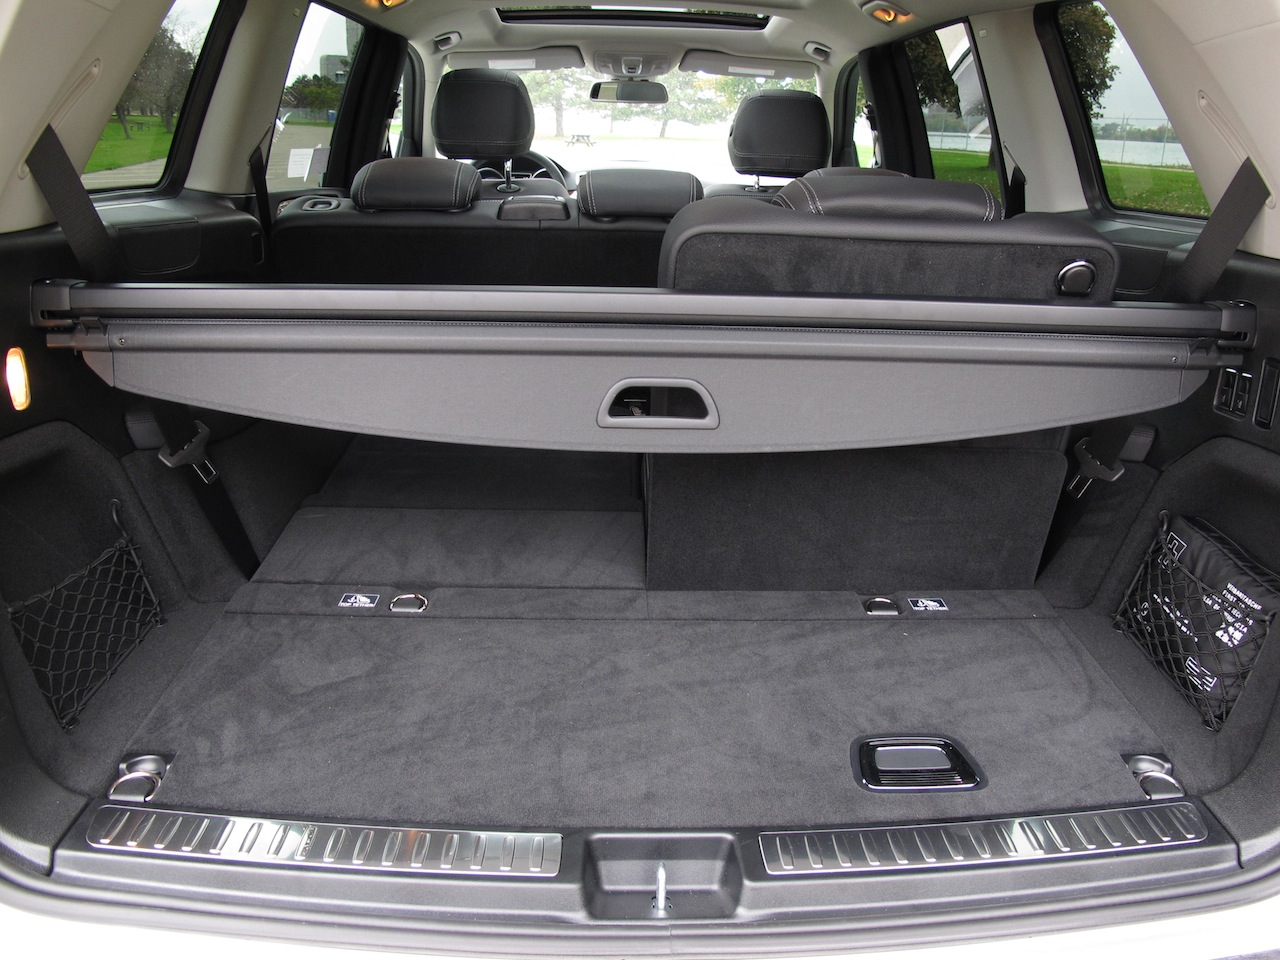 Mercedes gl 350 review 2014 change font size on a web for Mercedes benz car trunk organizer